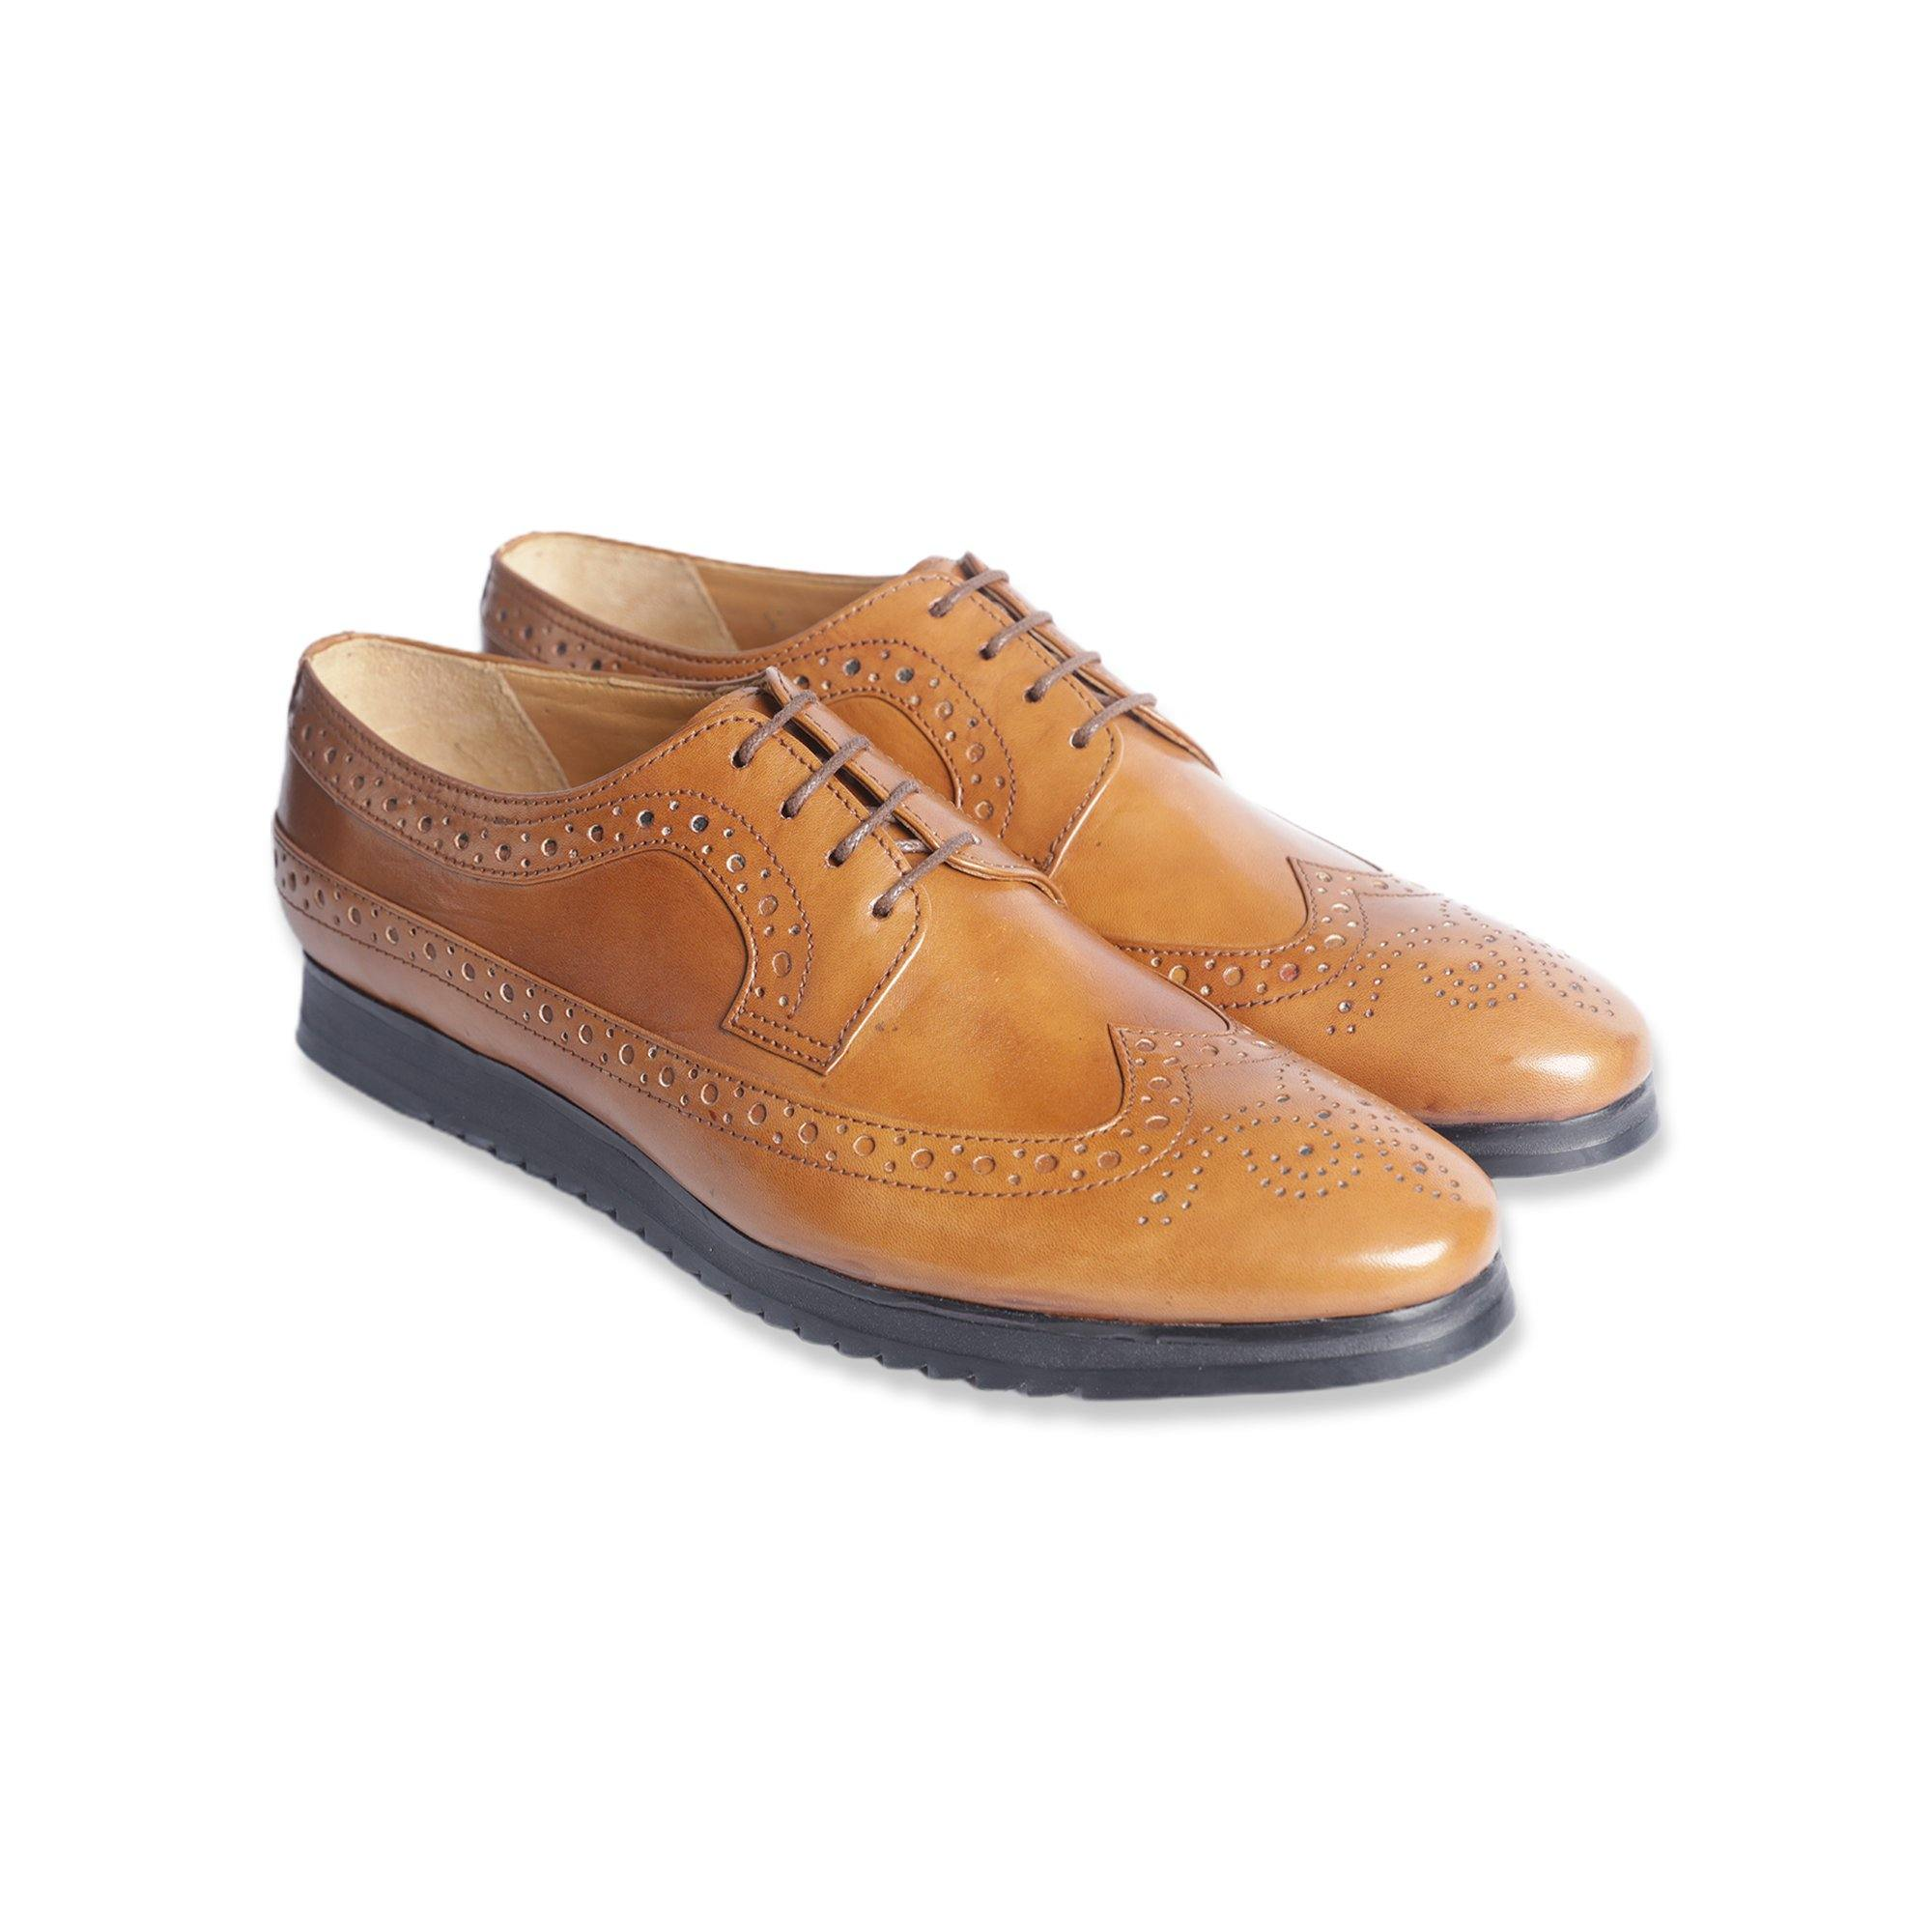 Hybrid 2 - Hybrid Dress Shoes in Khaki - TLC - The Leather Crafts